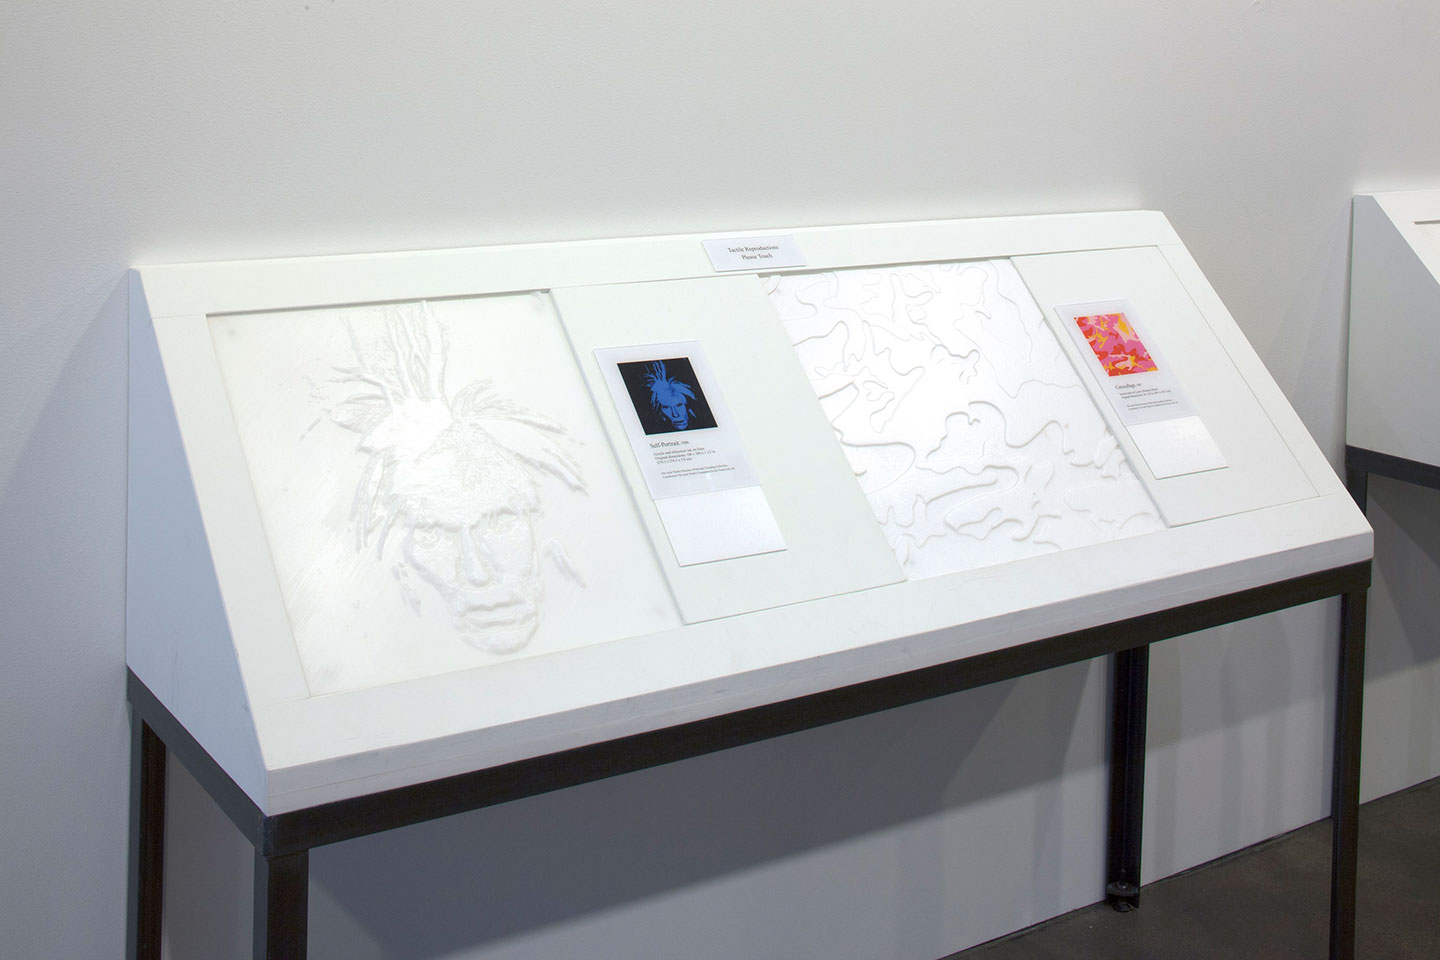 Two textured replicas of pictured artworks are presented on a table at waist height, angled upward at a 45 degree angle from the wall.